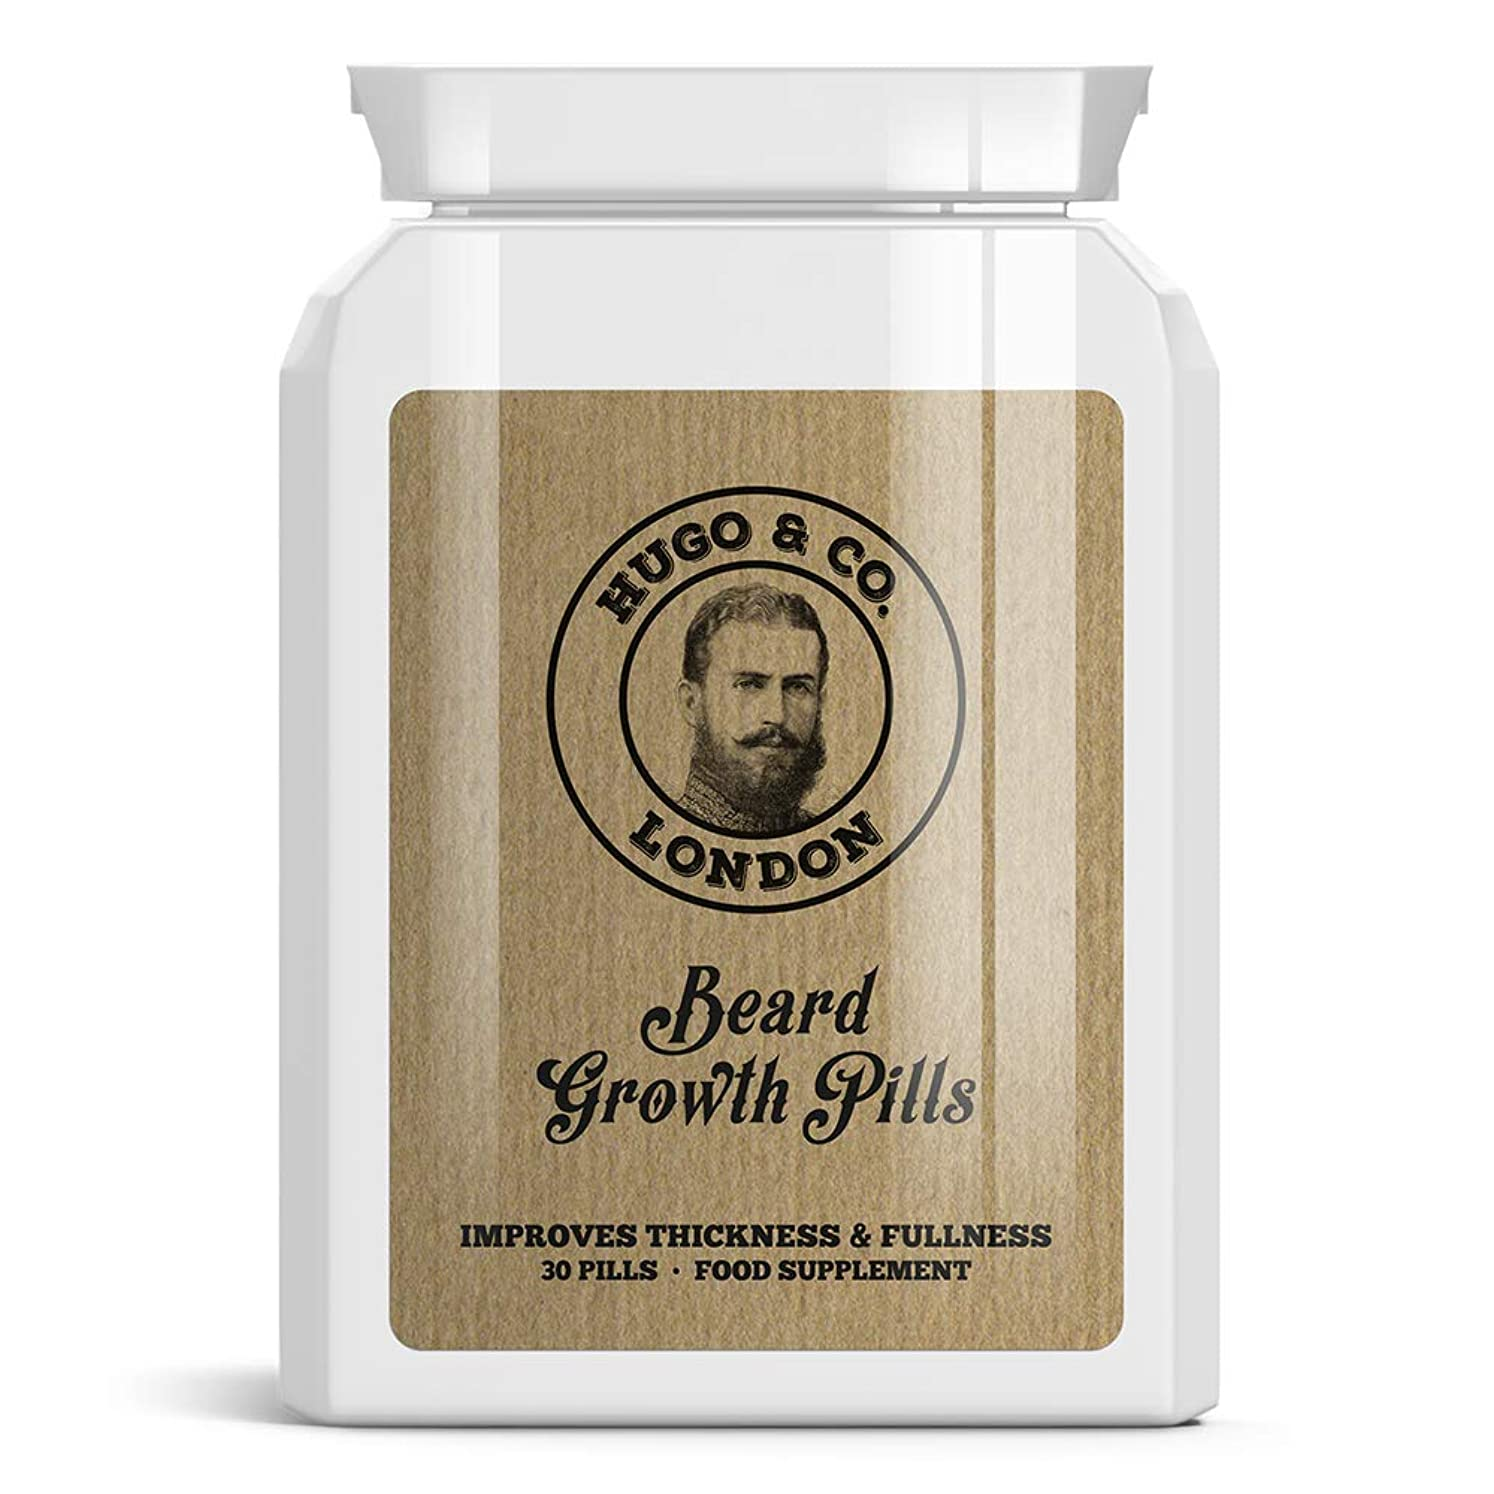 ピュー学習農業のHUGO & CO LONDON BEARD GROWTH PILLS ロンドンひげの成長丸薬は - パッチ状ビッグシックひげGROW STOPS HUGO& CO Rondon hi-ge no seich? gan'yaku wa - patchi-j? biggushikku hi-ge gur? STOPS